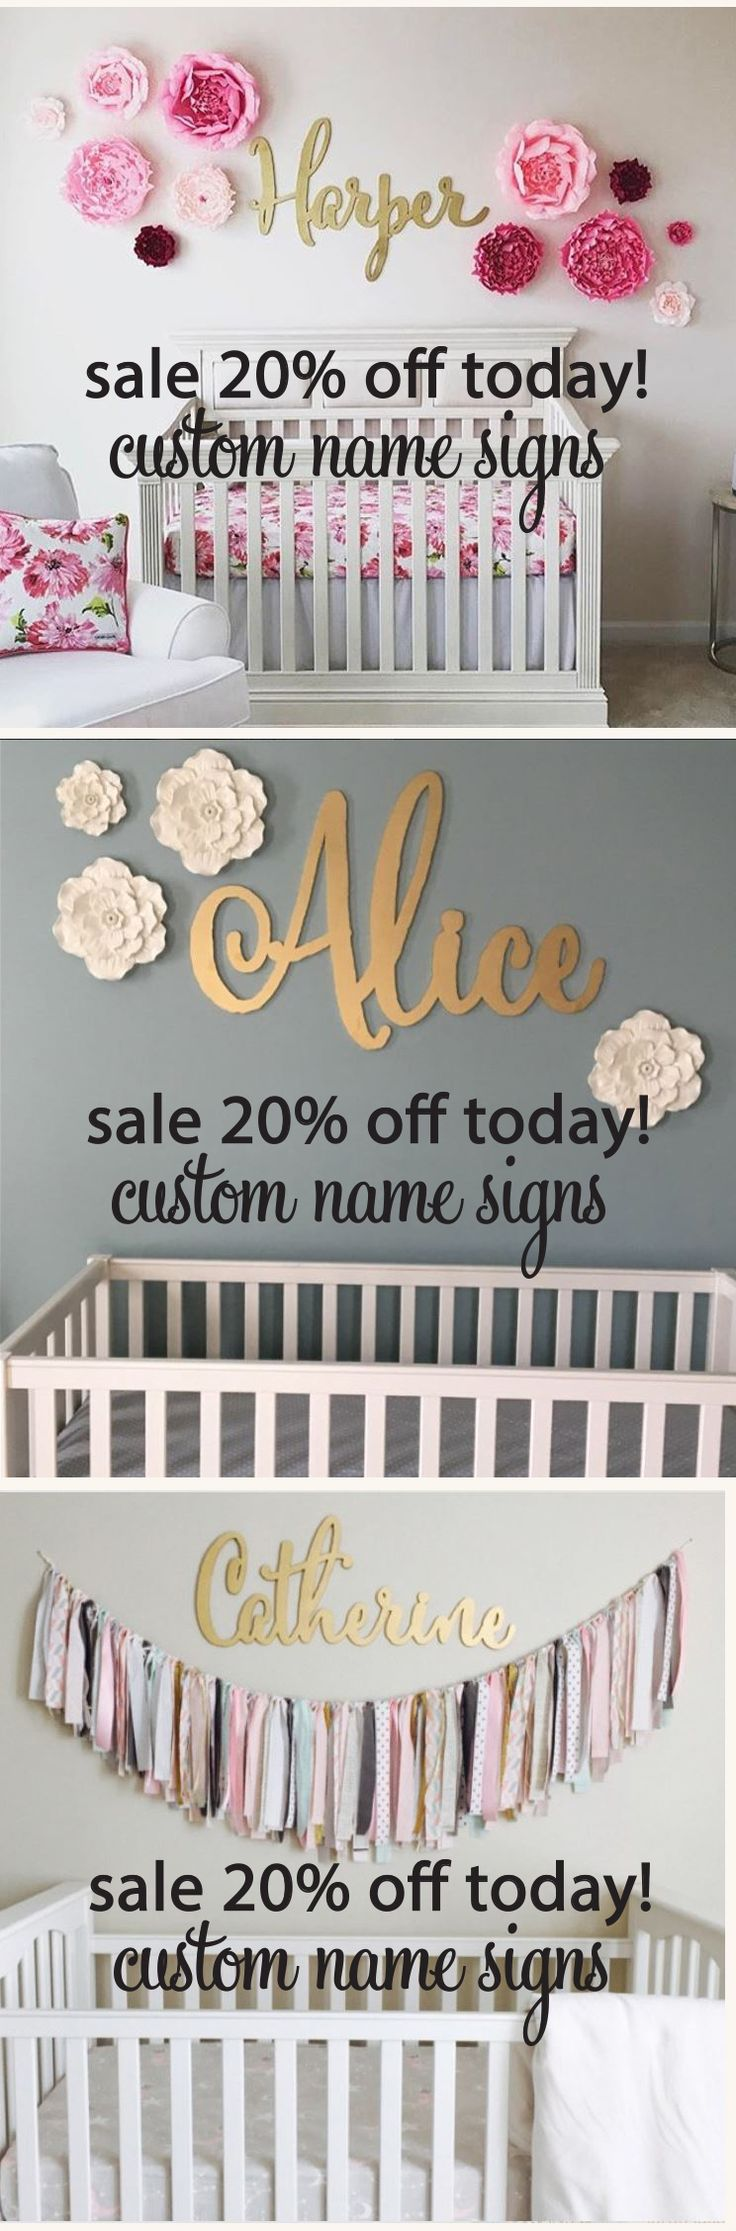 What a great idea to decorate above a crib for a new baby room! A custom laser cut name sign will add an extra special touch to your nursery decor.